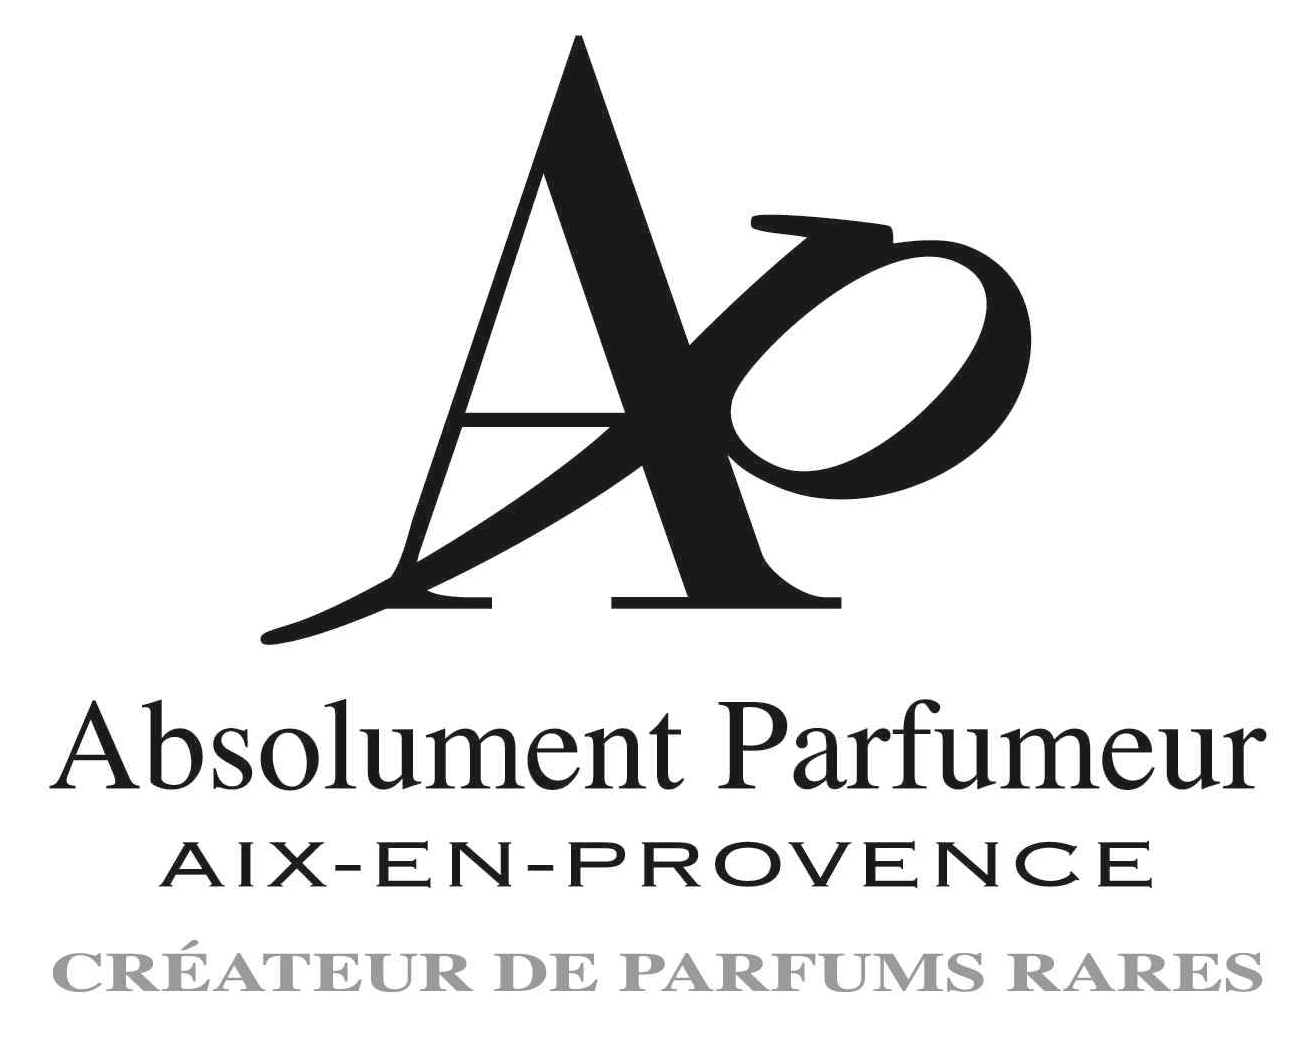 Absoluement Parfumeur